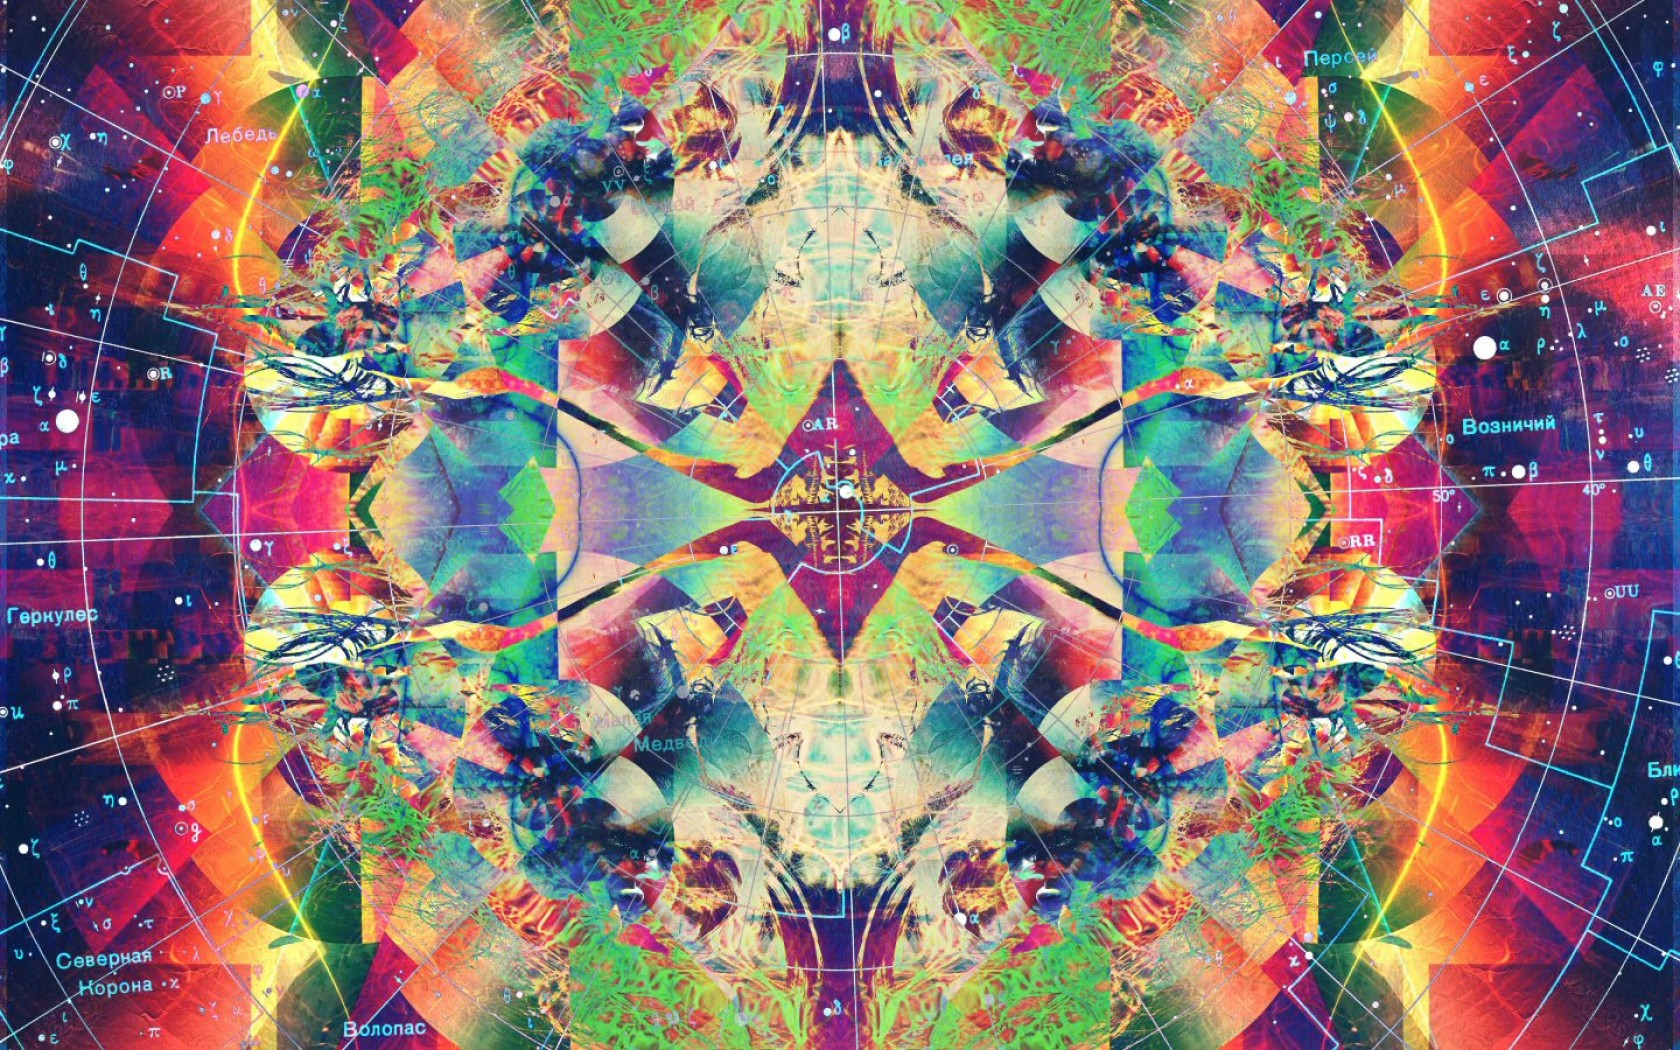 Trippy Abstract Cool Colorful Hd Wallpaper for Desktop and Mobiles